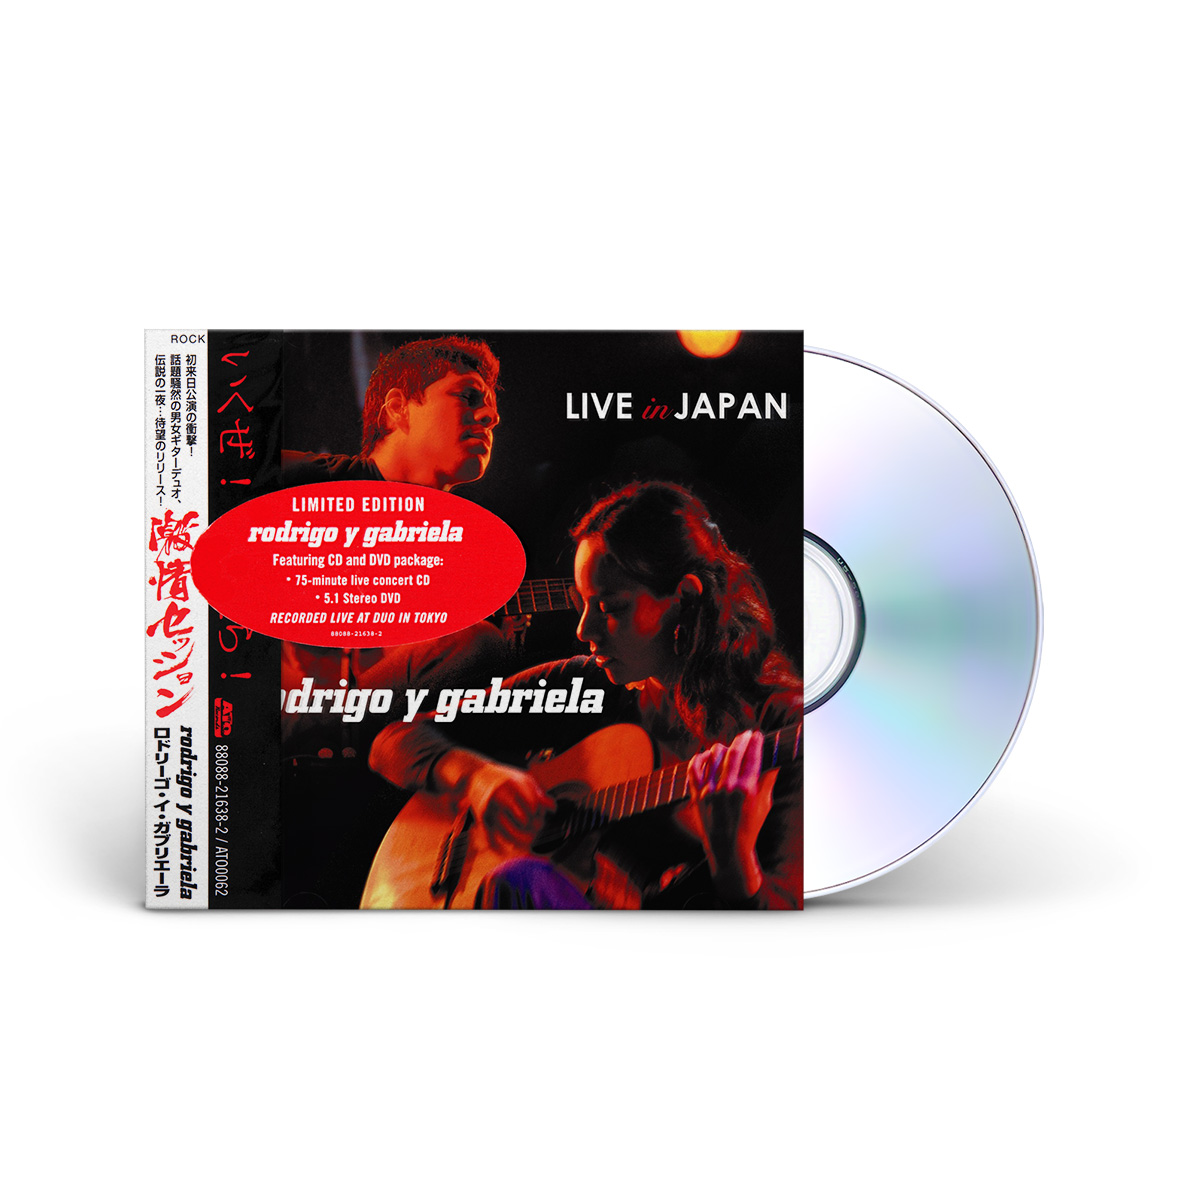 Rodrigo y Gabriela Live in Japan 2008 Japanese Limited Edition CD